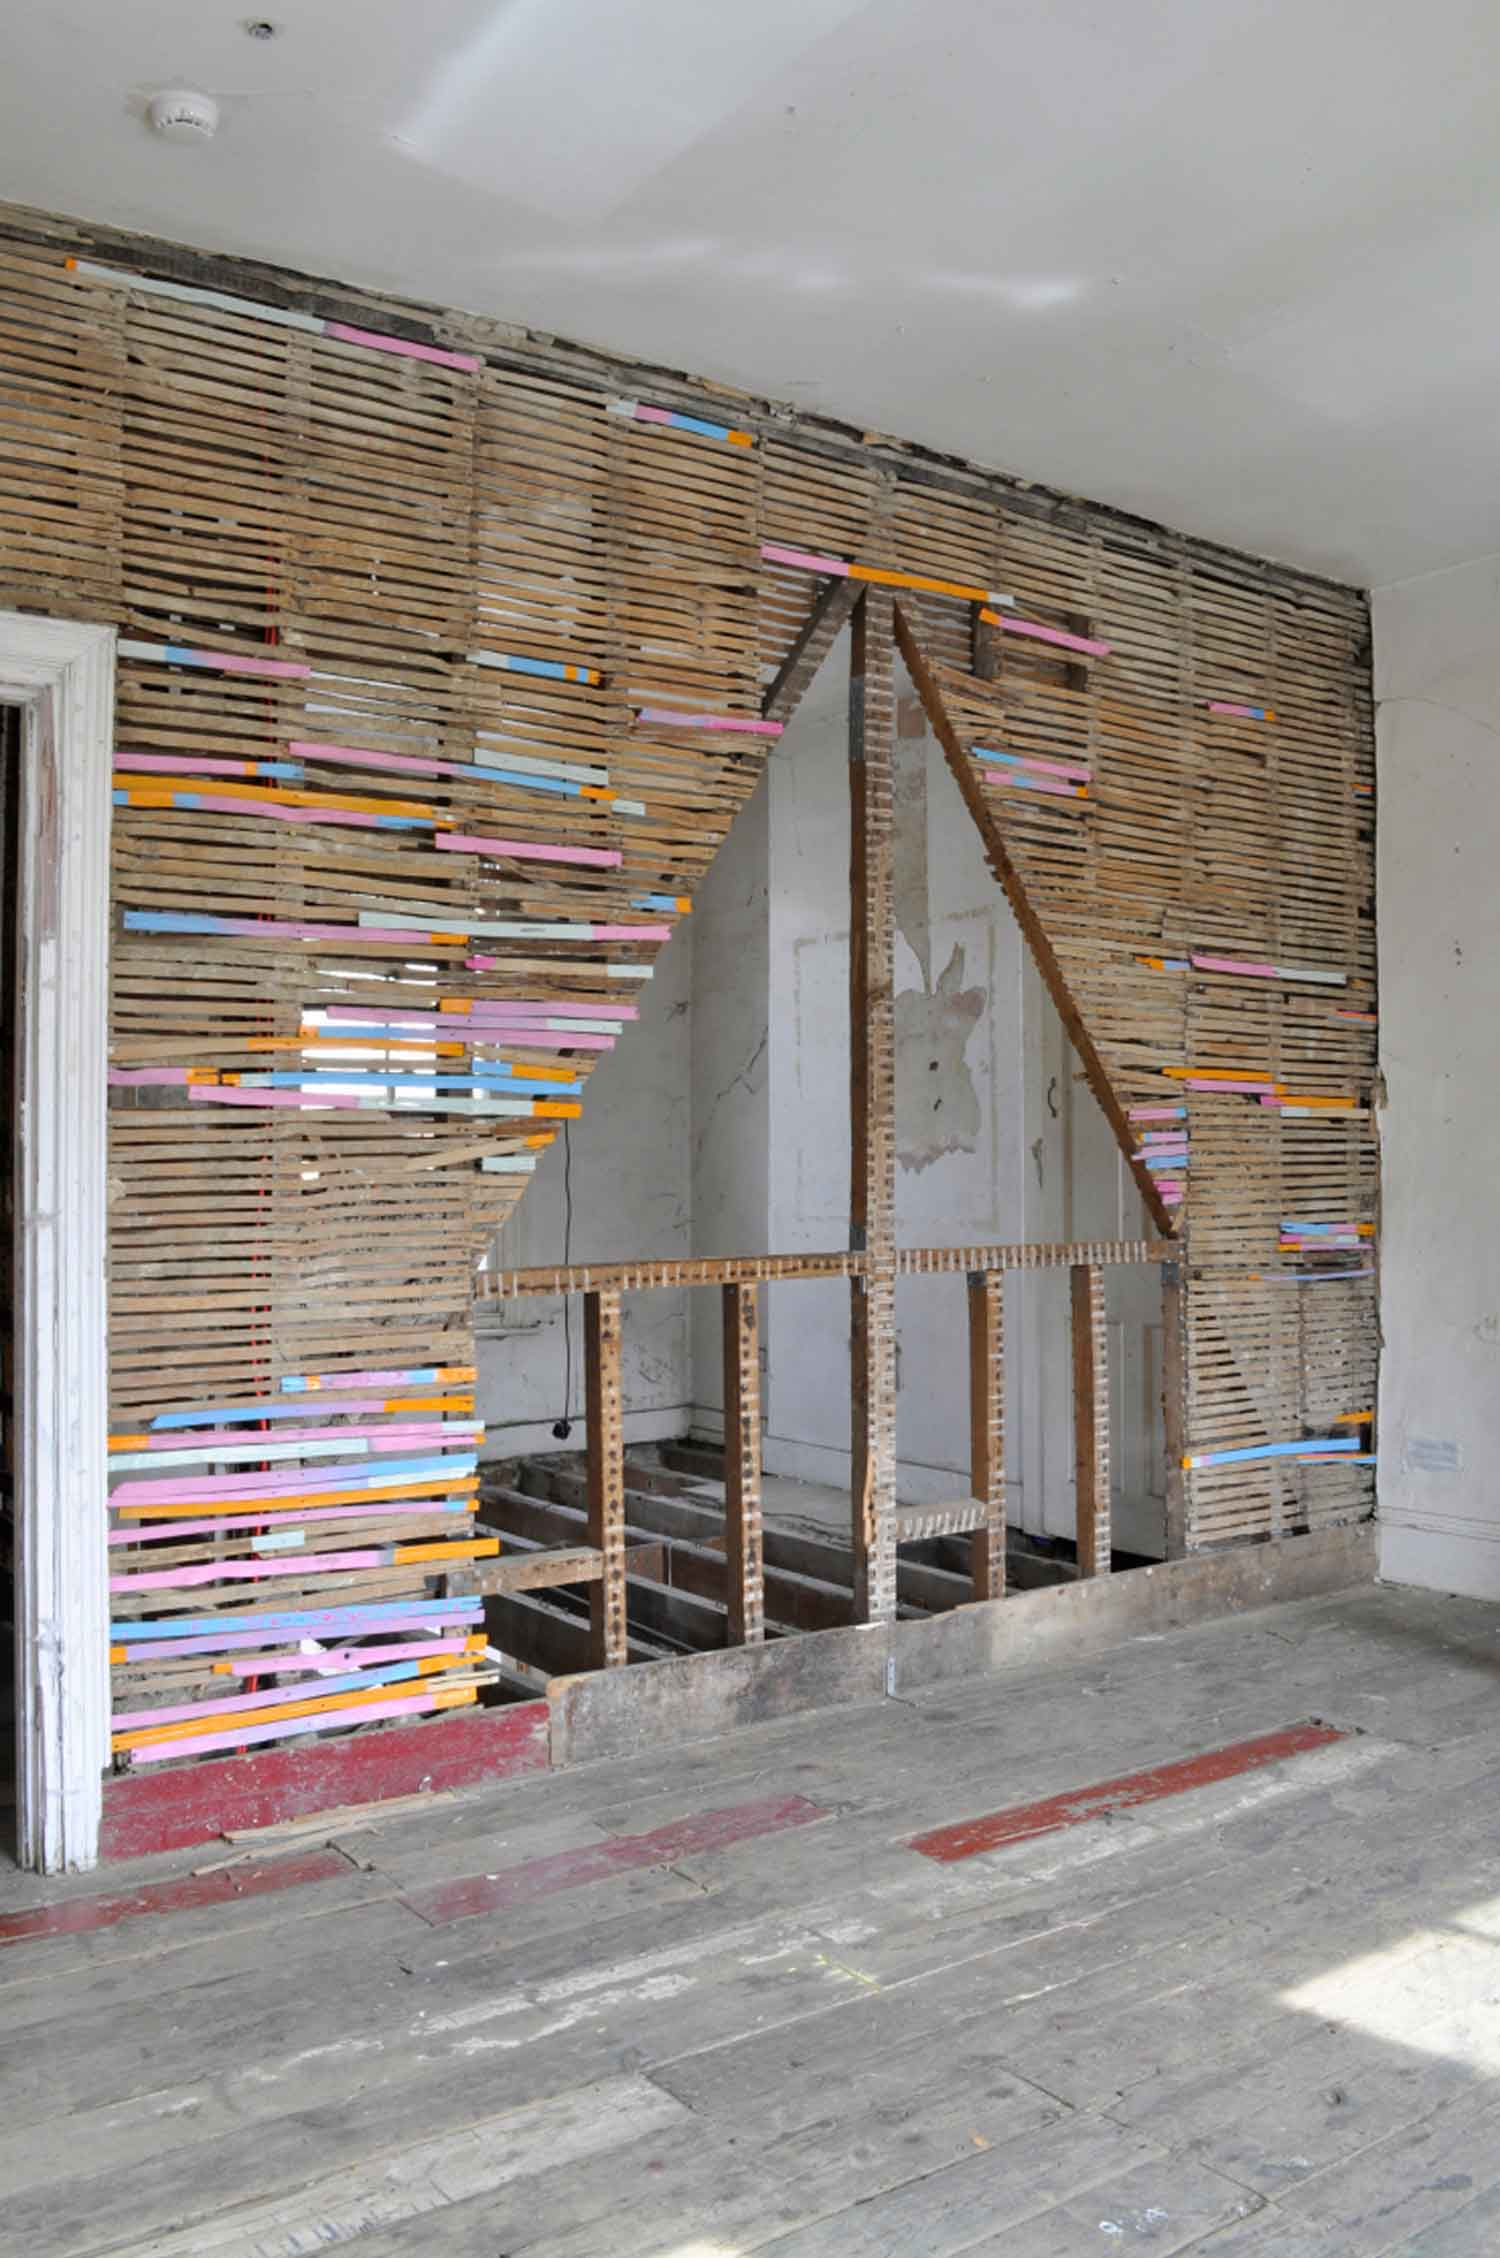 SALVAGE, 2016  A painting installation at the Safehouse exhibition space in Peckham, London.    Household paint on salvaged laths.